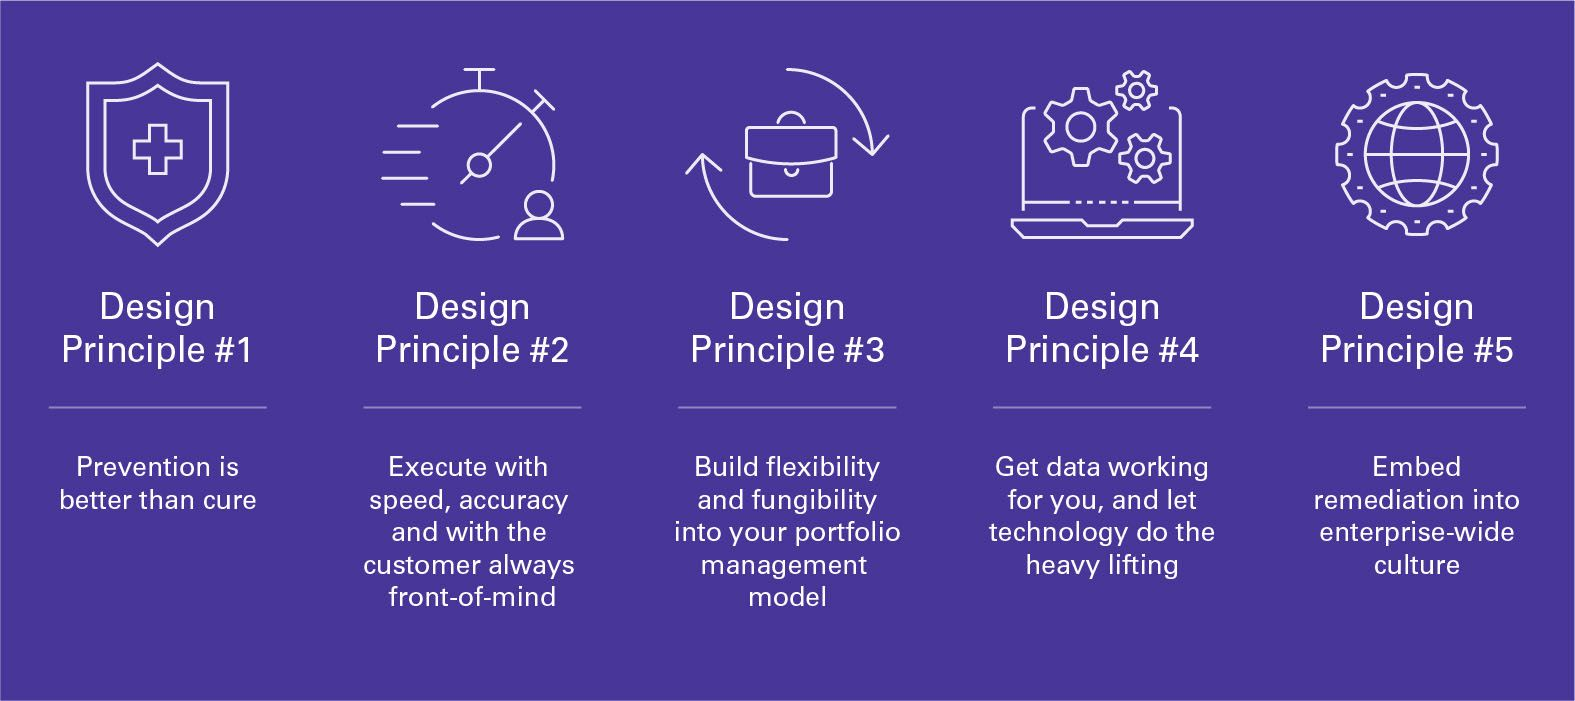 KPMG's five design principles to foster successful remediation execution, highlighting customer needs.